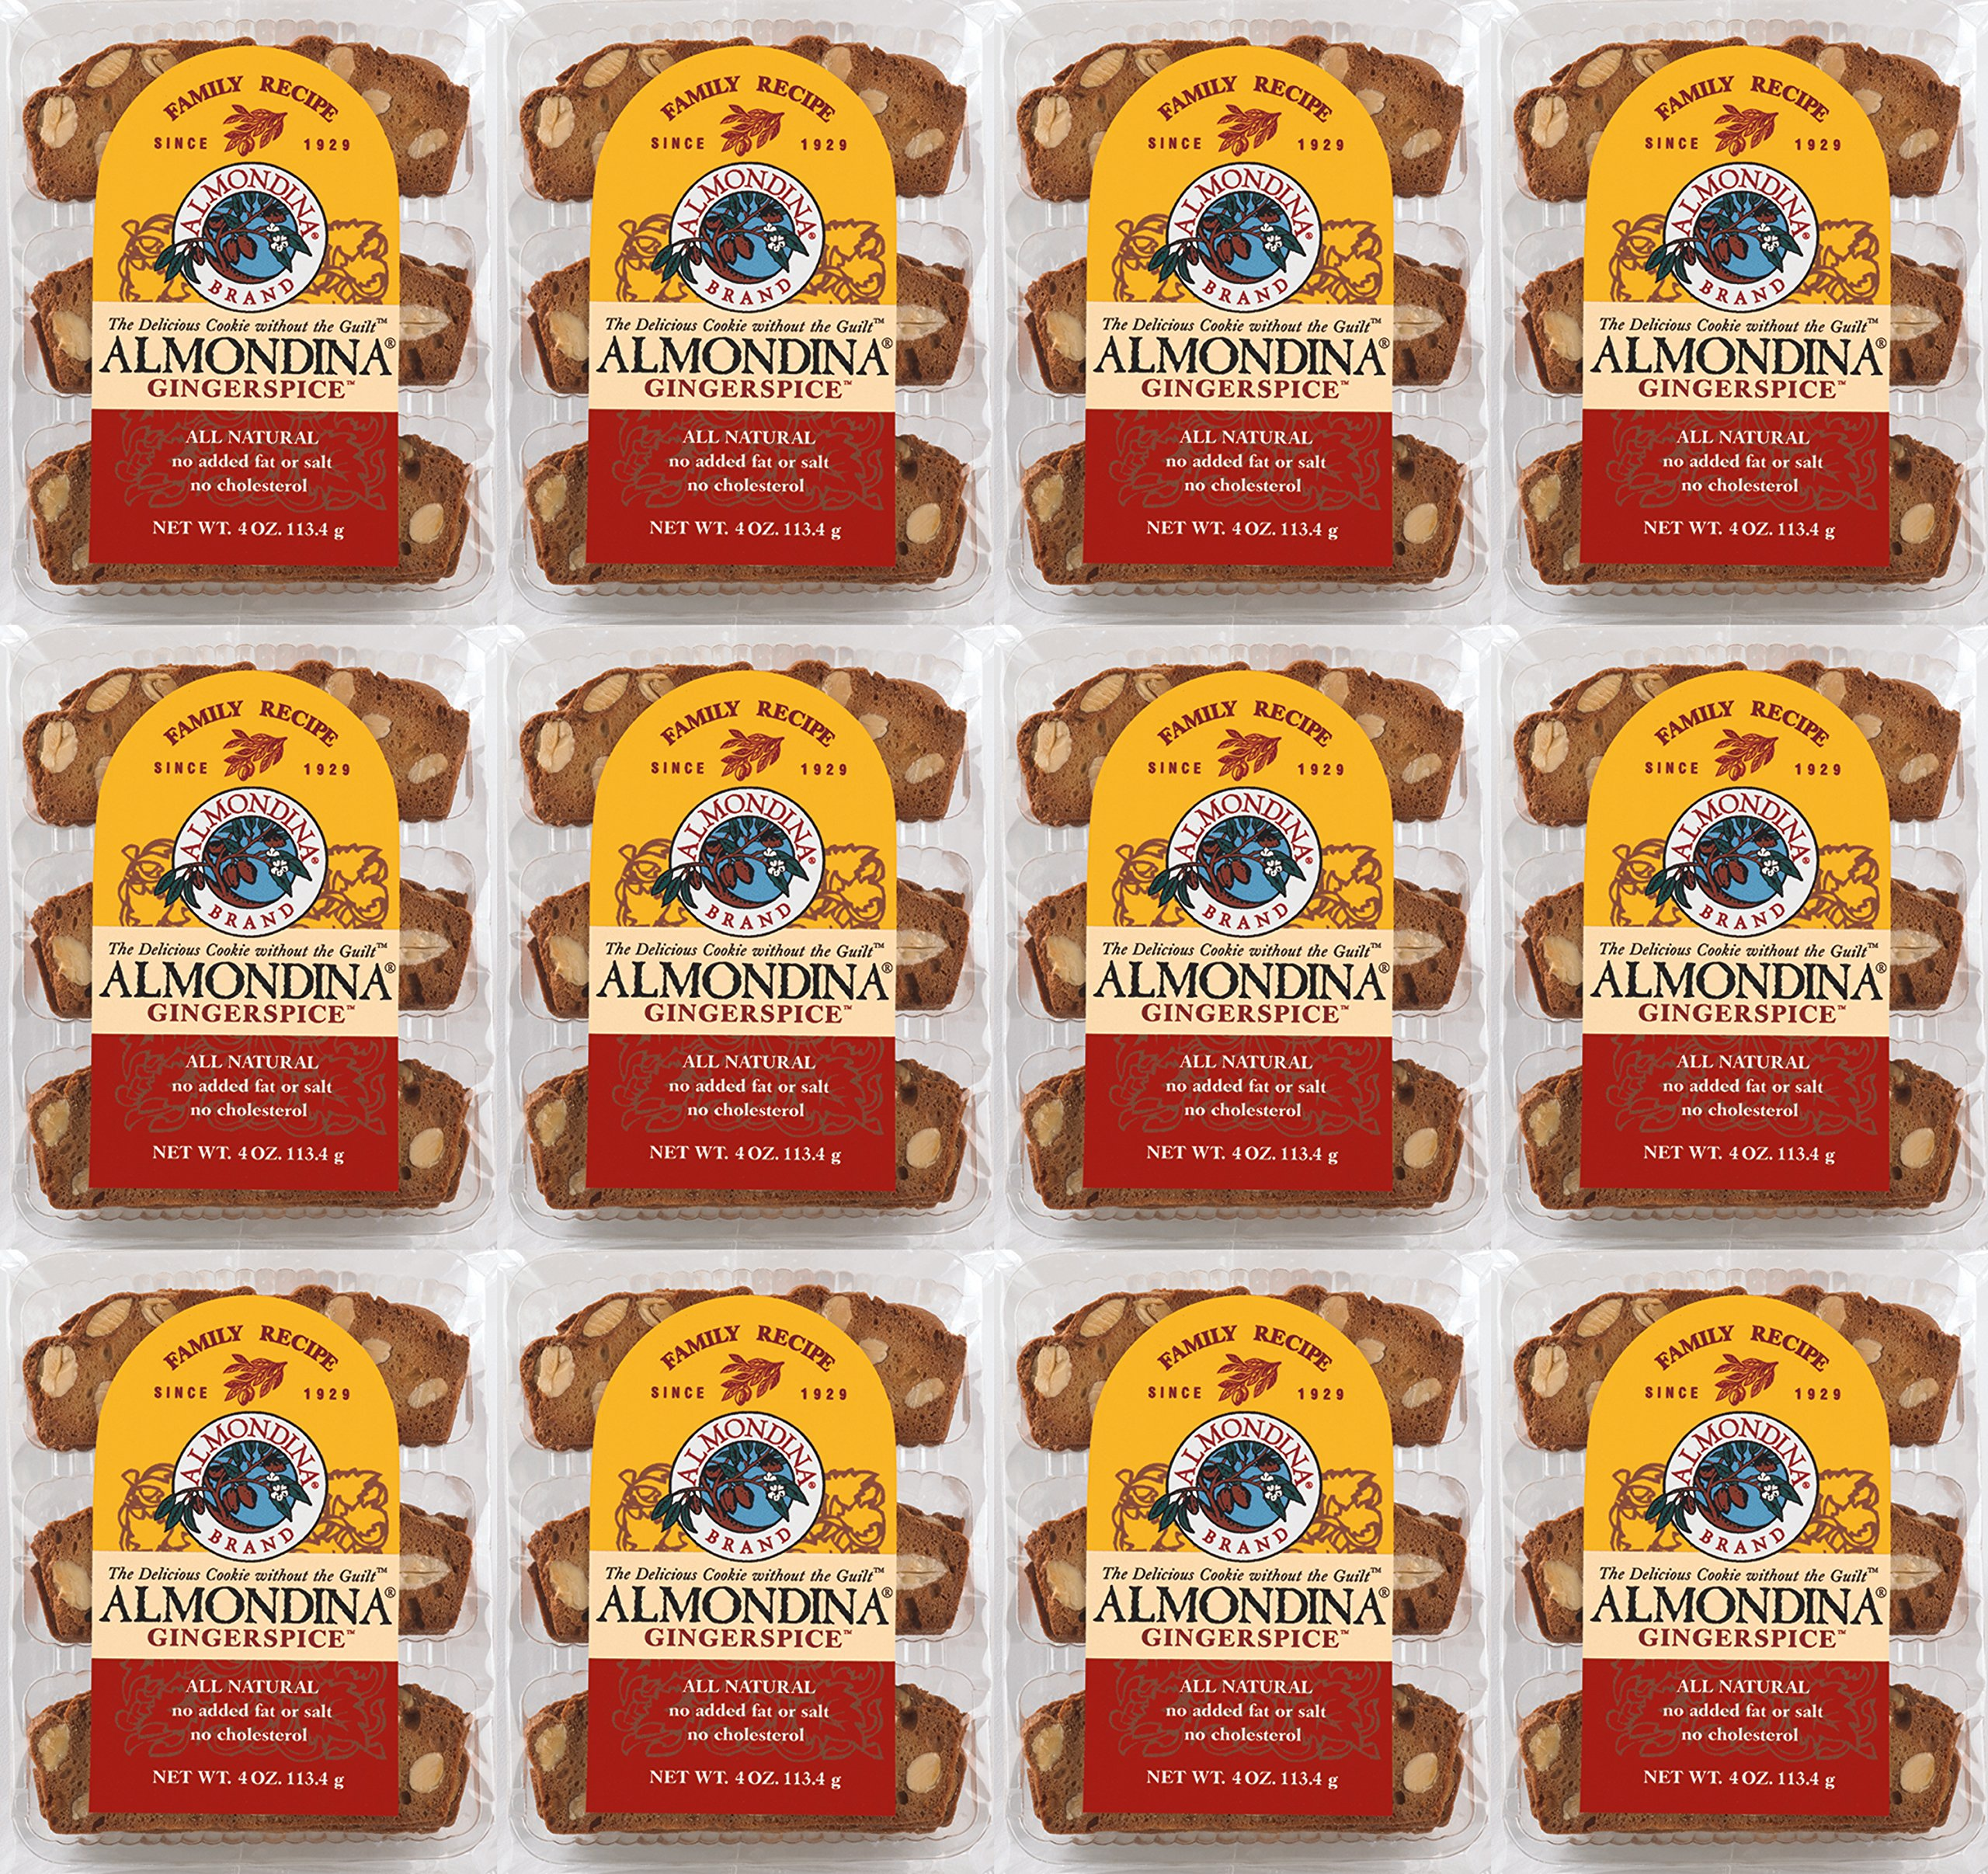 Almondina Gingerspice Biscuit, 4 ounce, 12 Pack